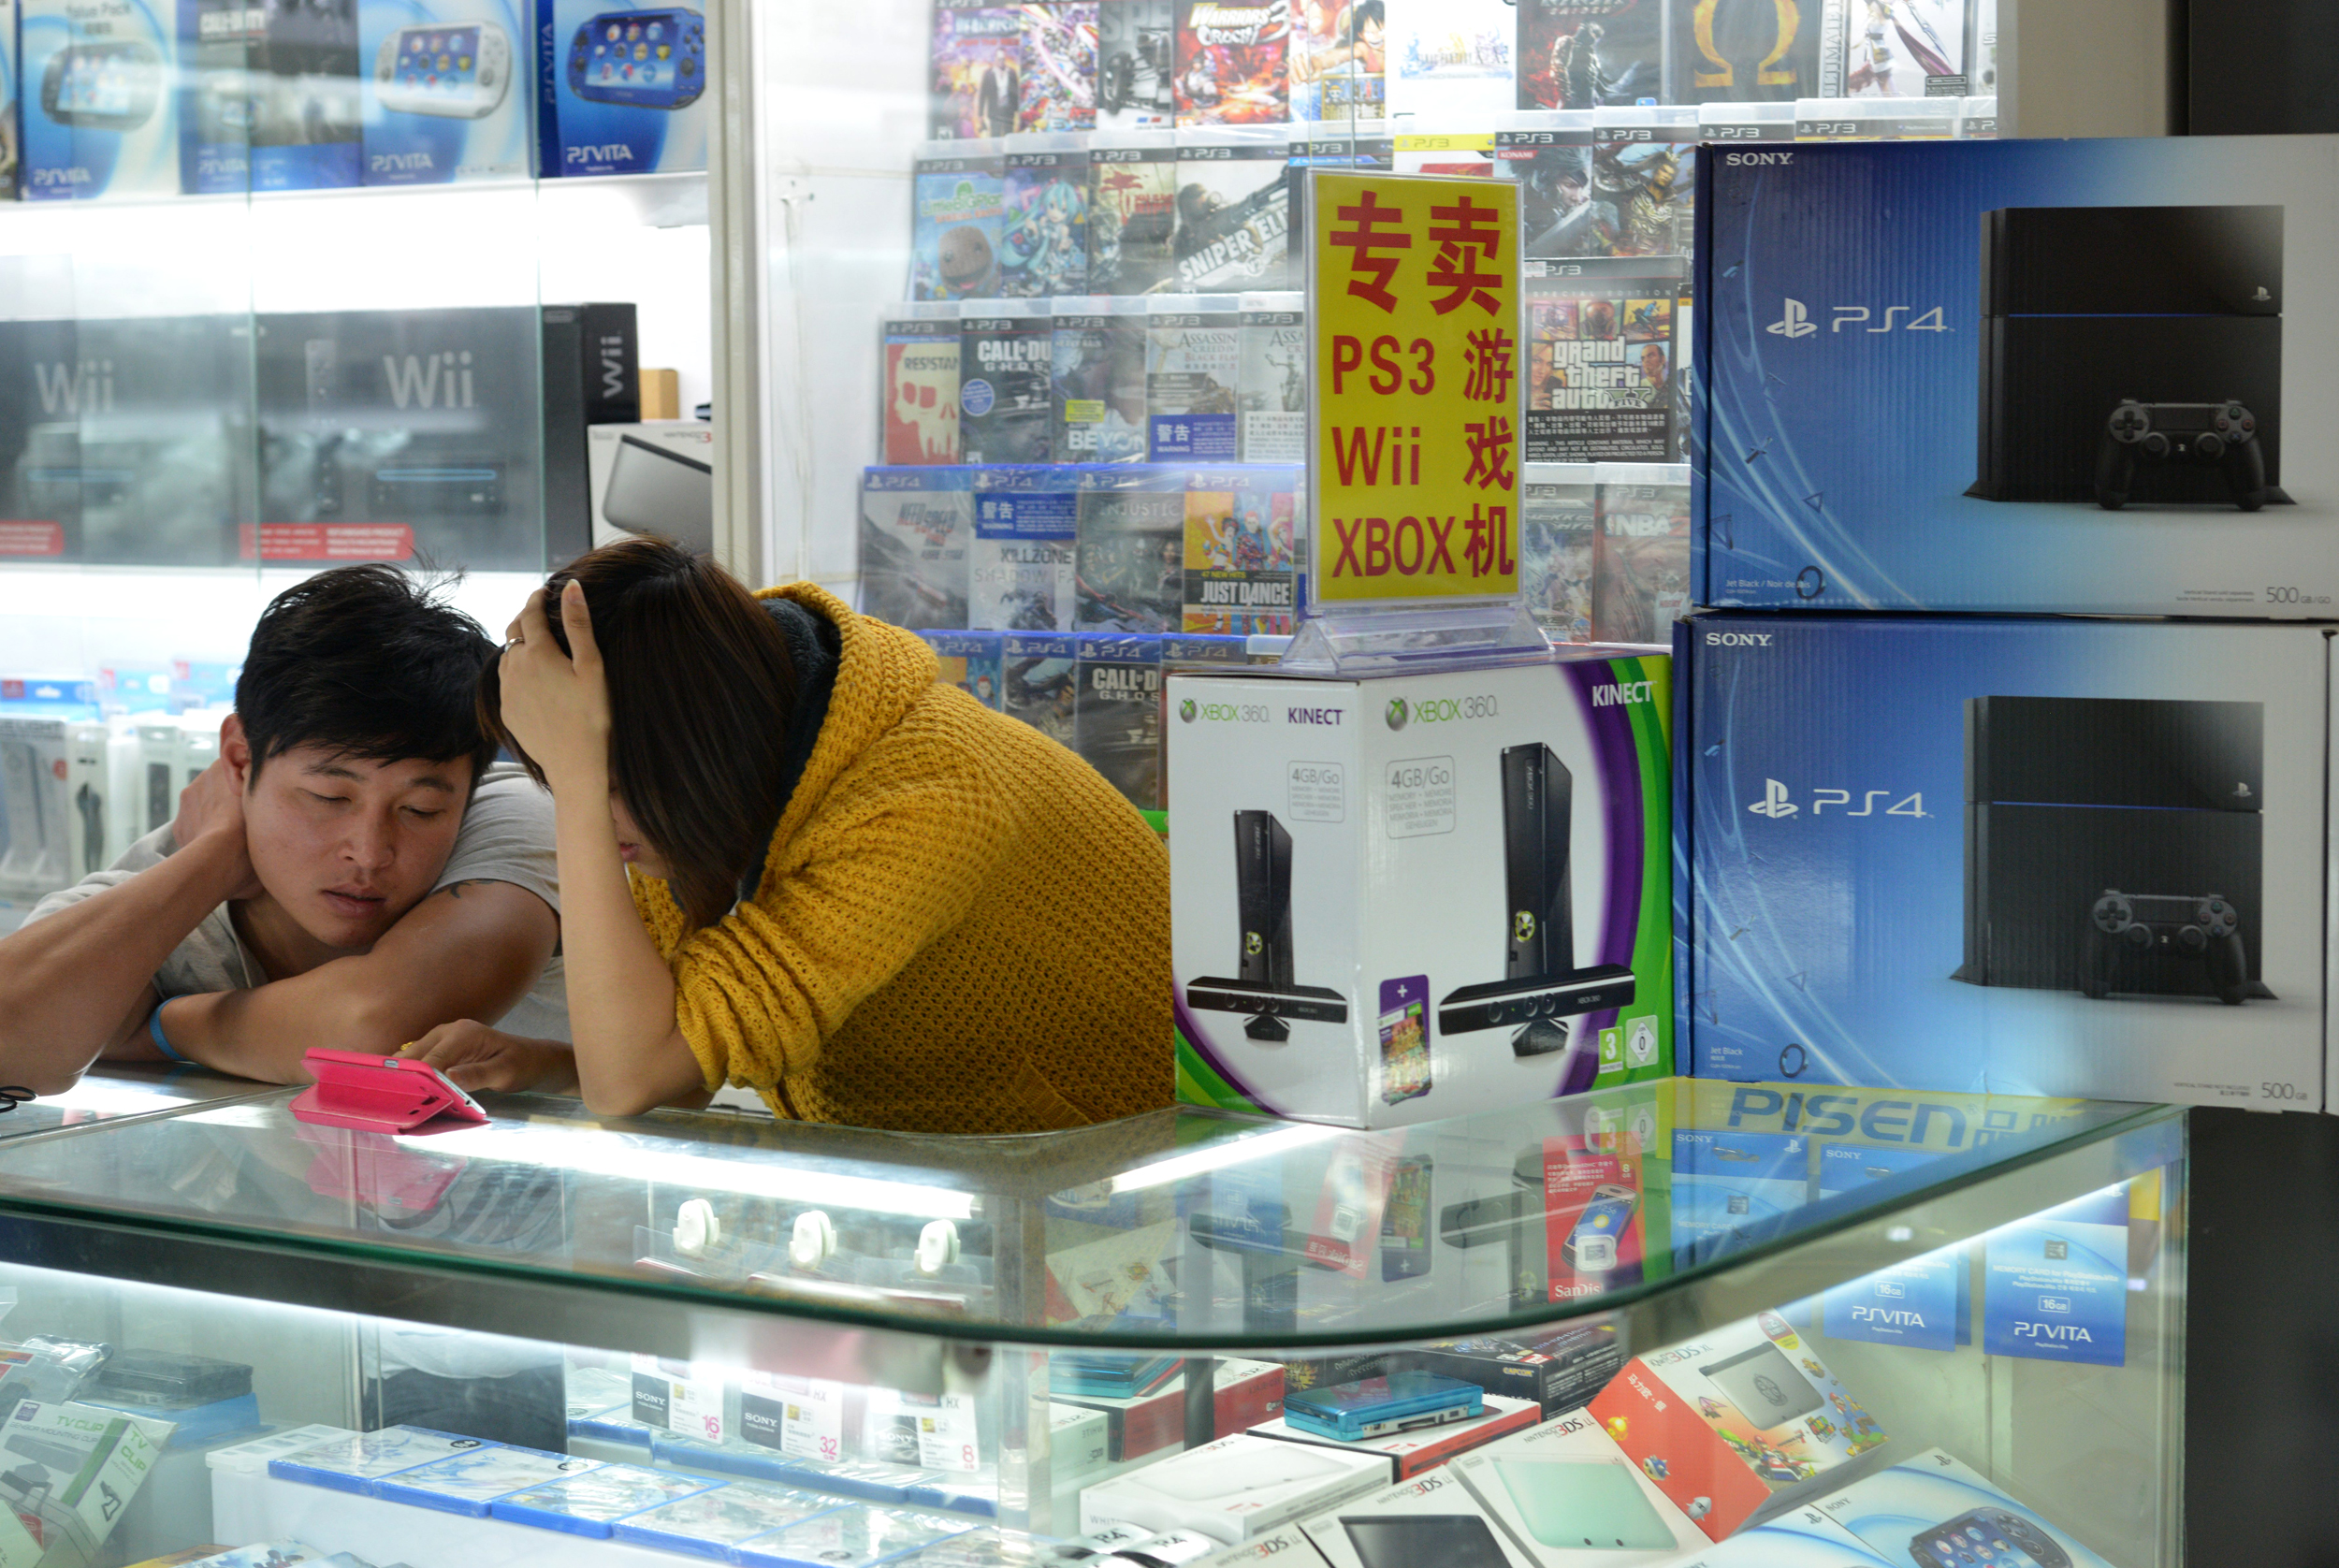 A vendor sells game consoles including Microsoft's Xbox One in a major electronics market in Shanghai on January 8, 2014.